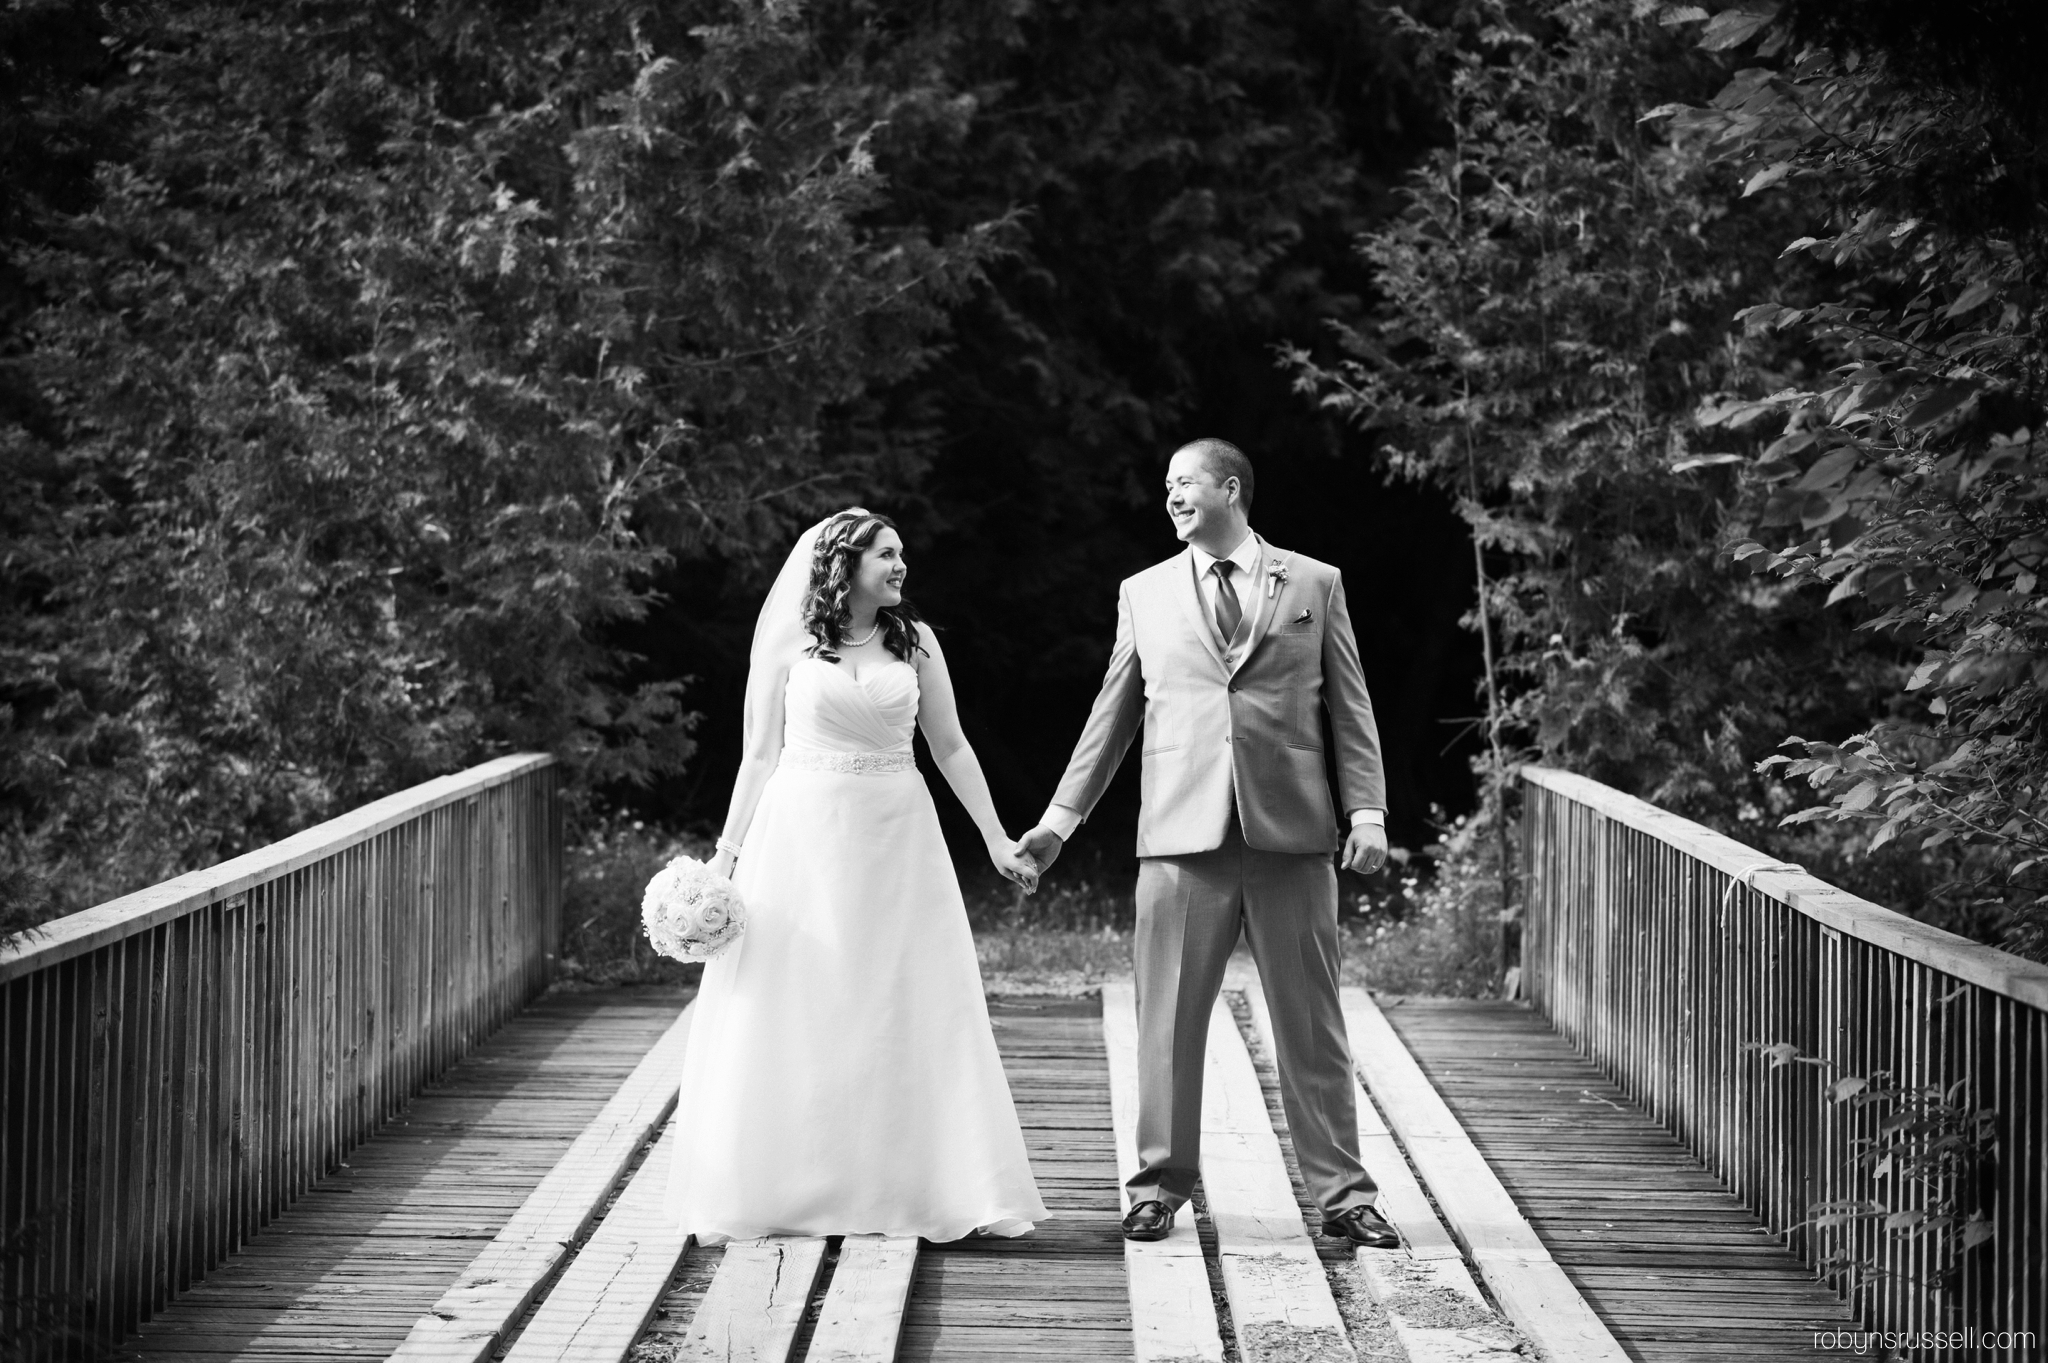 41-kissing-bridge-wedding-photography-drysdale.jpg